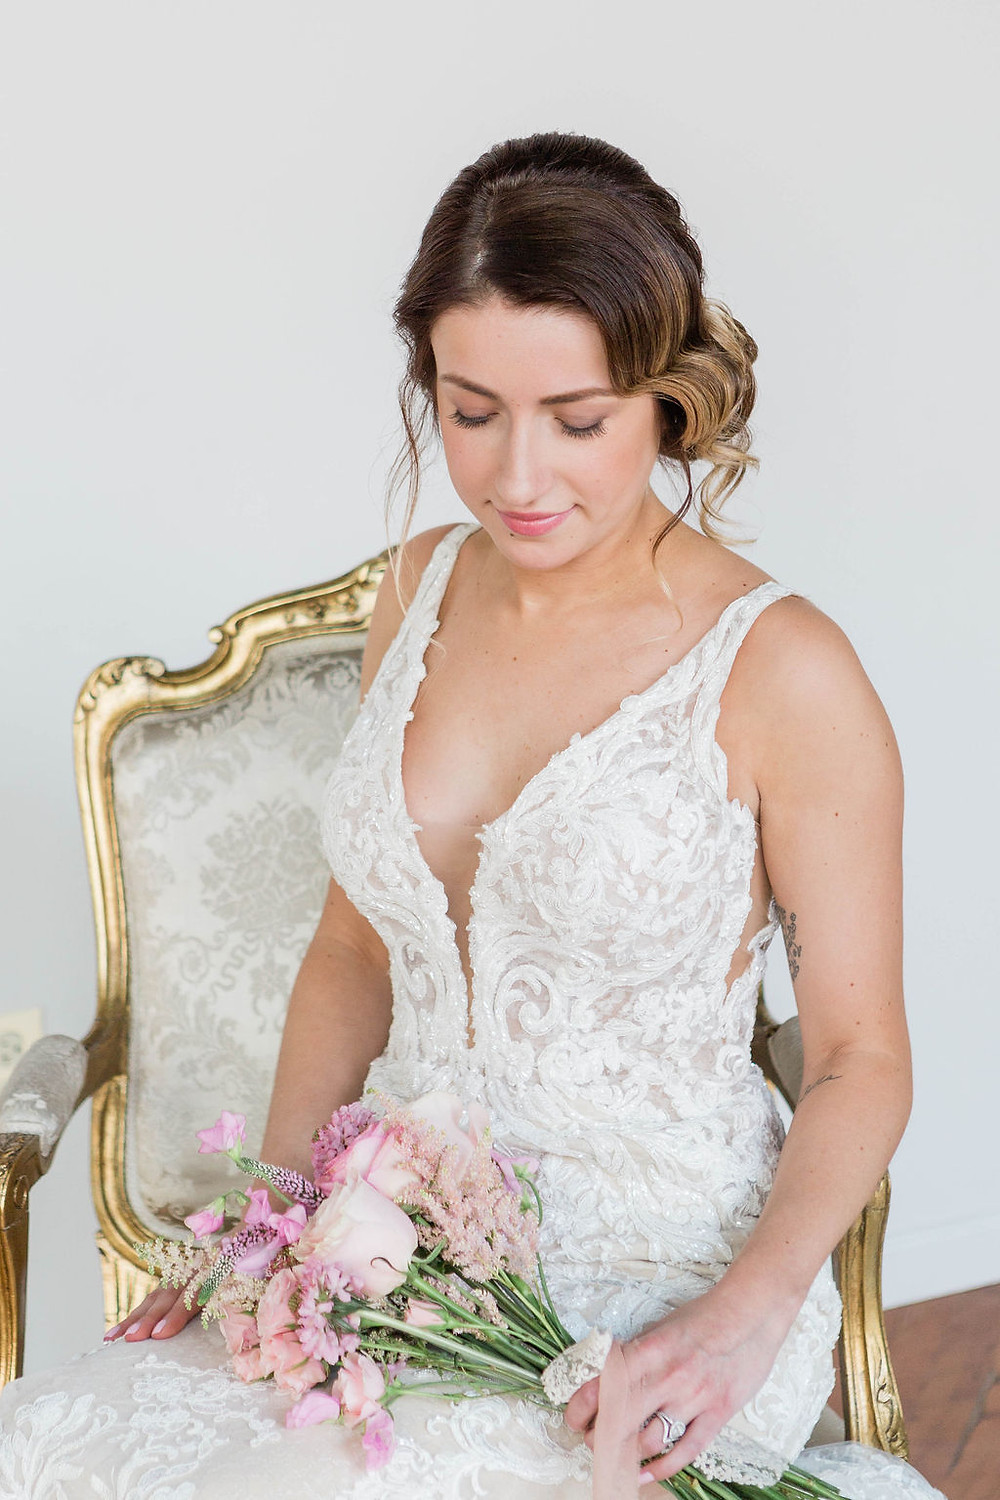 bride seated on vintage chair with floral bouquet